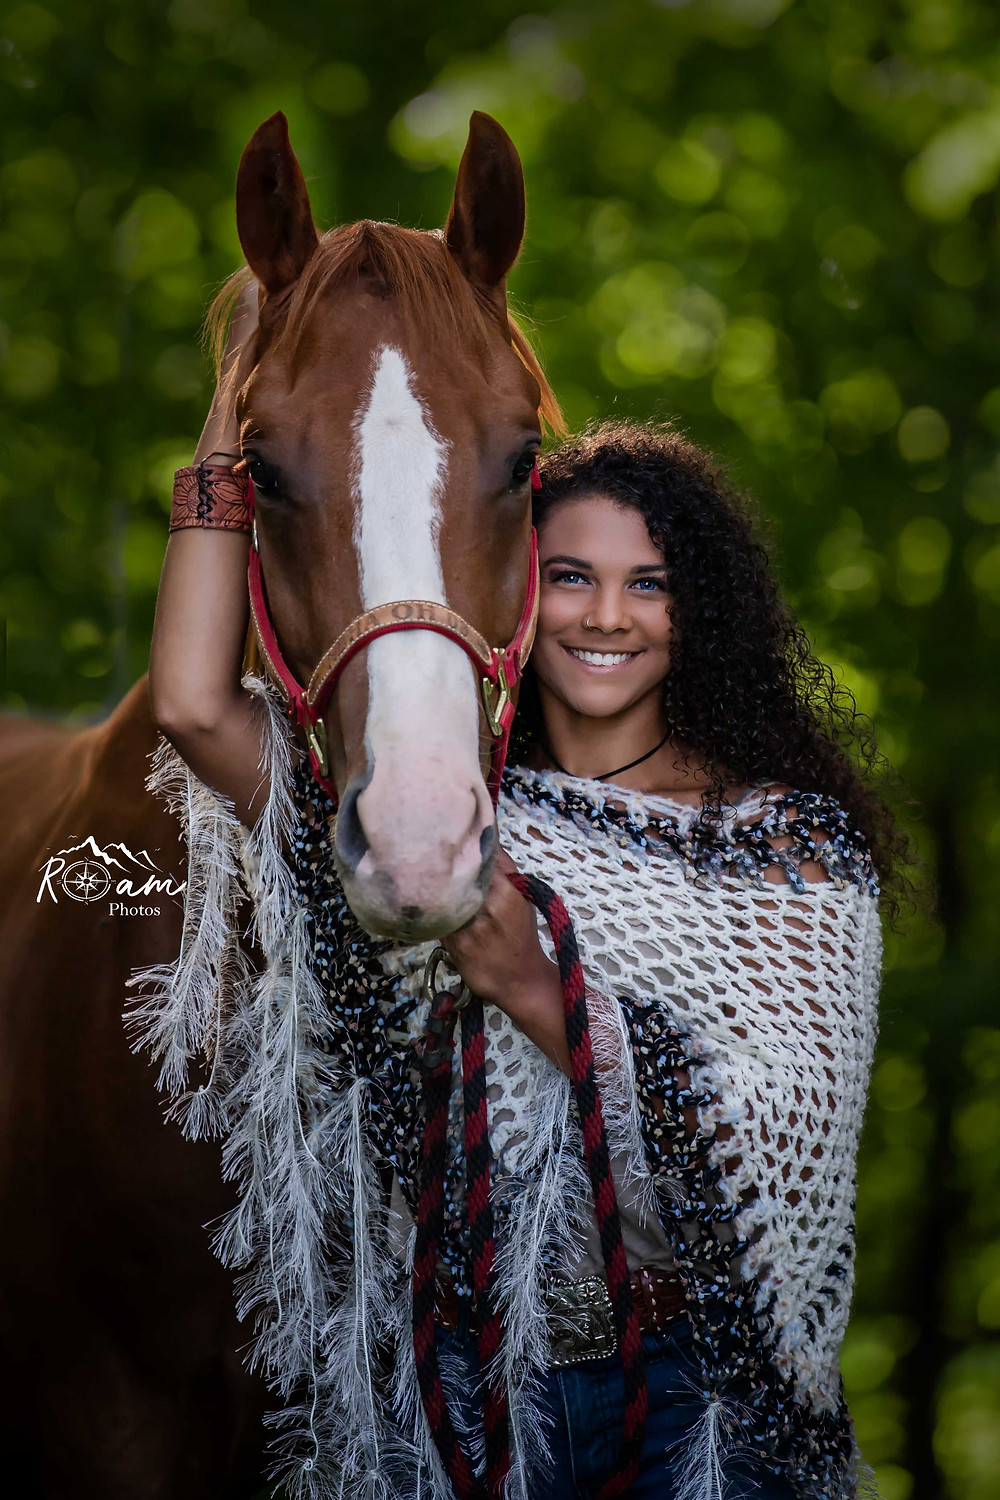 equestrian of color with her horse